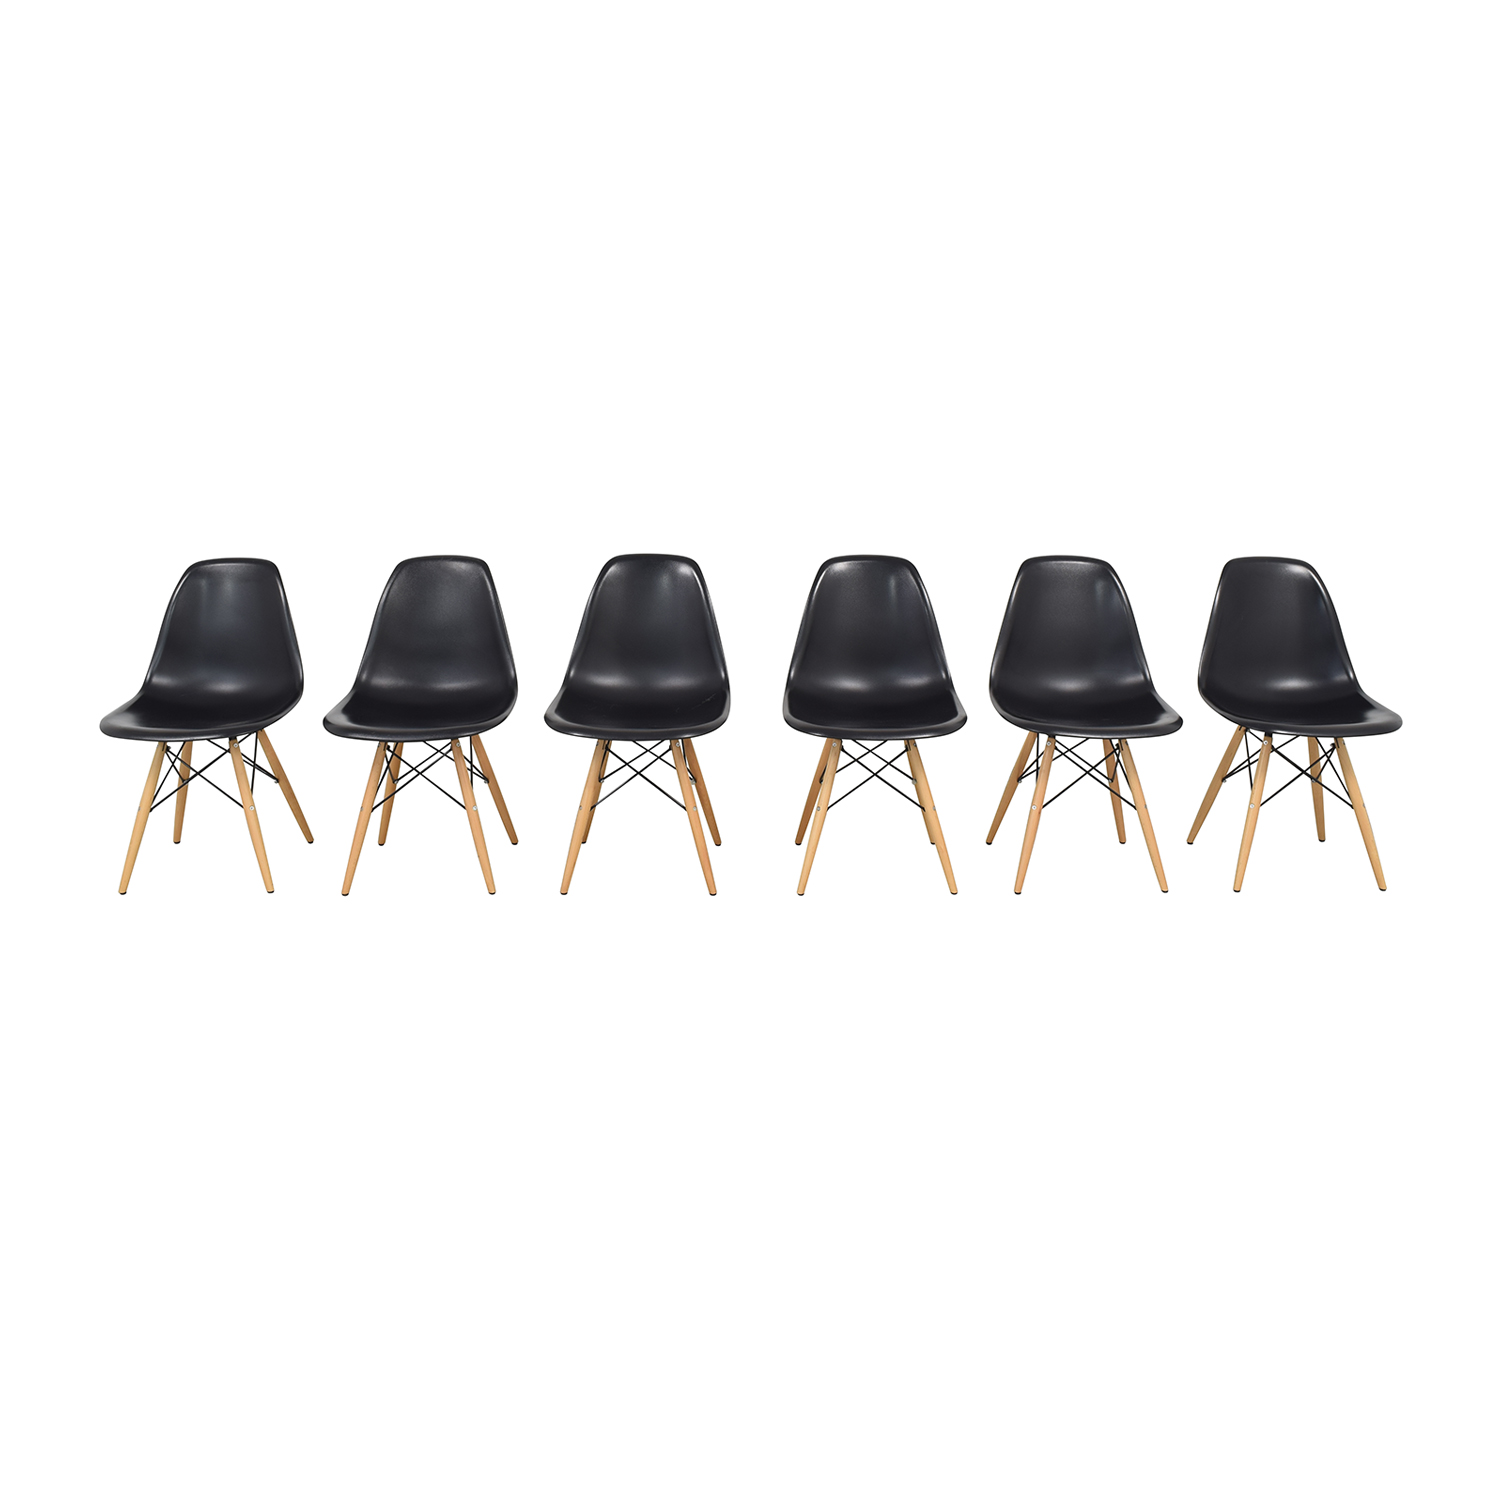 Black Eames-Style Molded Plastic Dining Chairs with Wooden Legs on sale